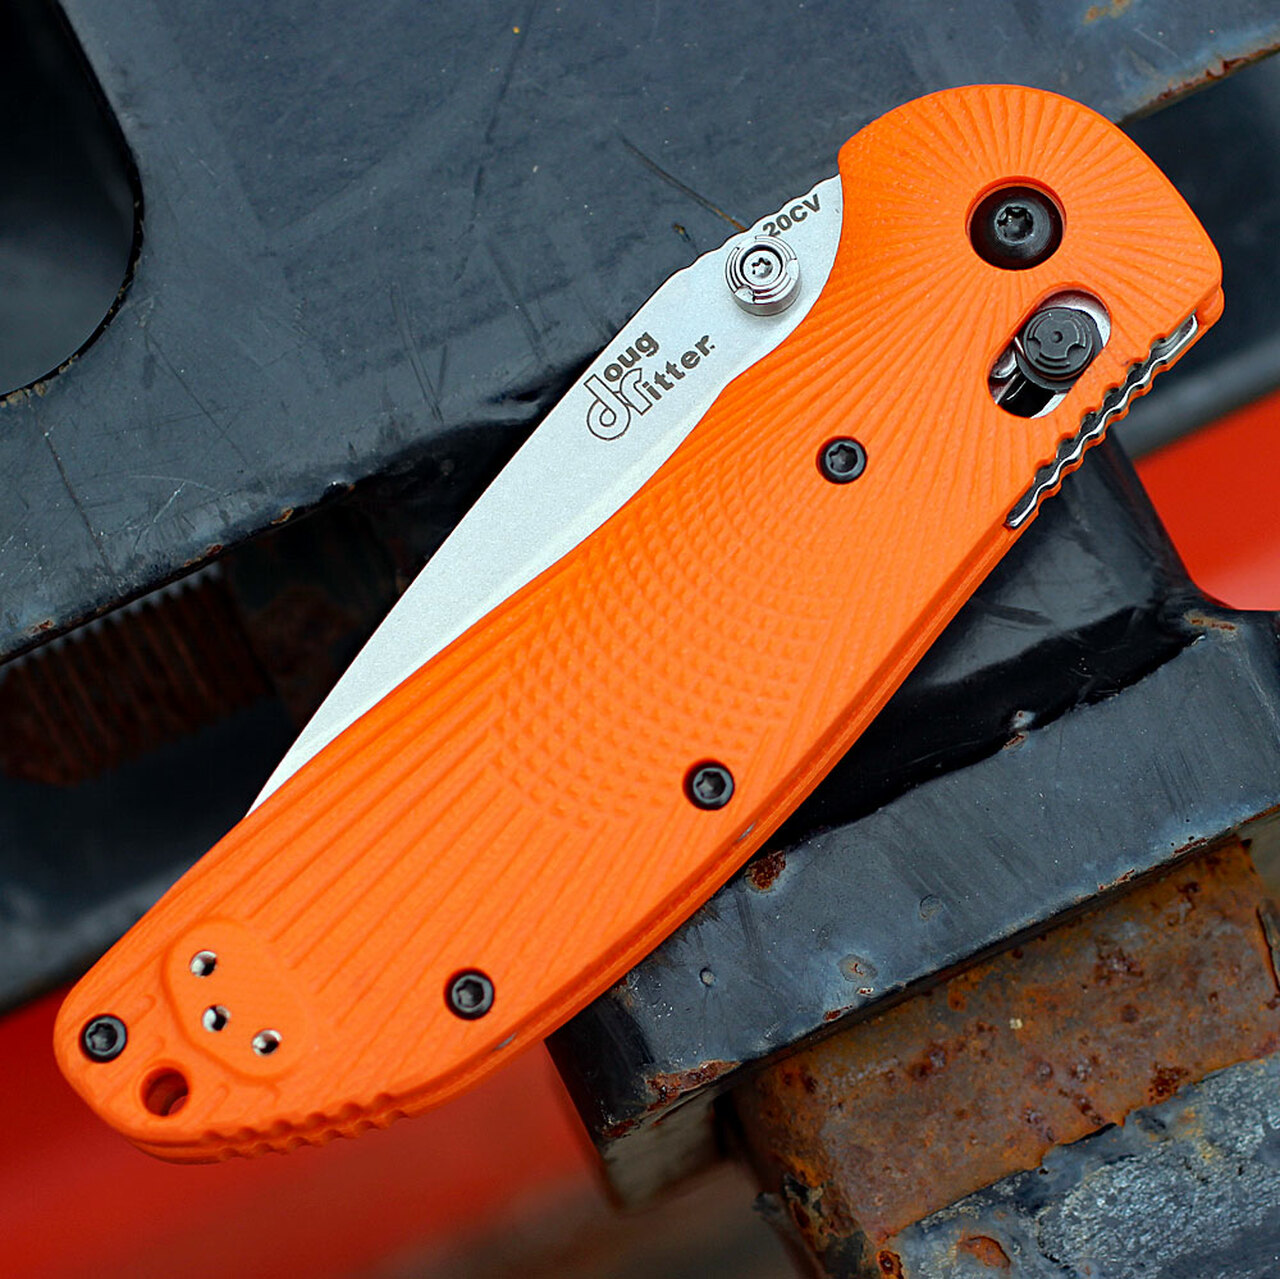 Doug Ritter RSK®  MK1-G2 Knifeworks Exclusive-Orange G-10